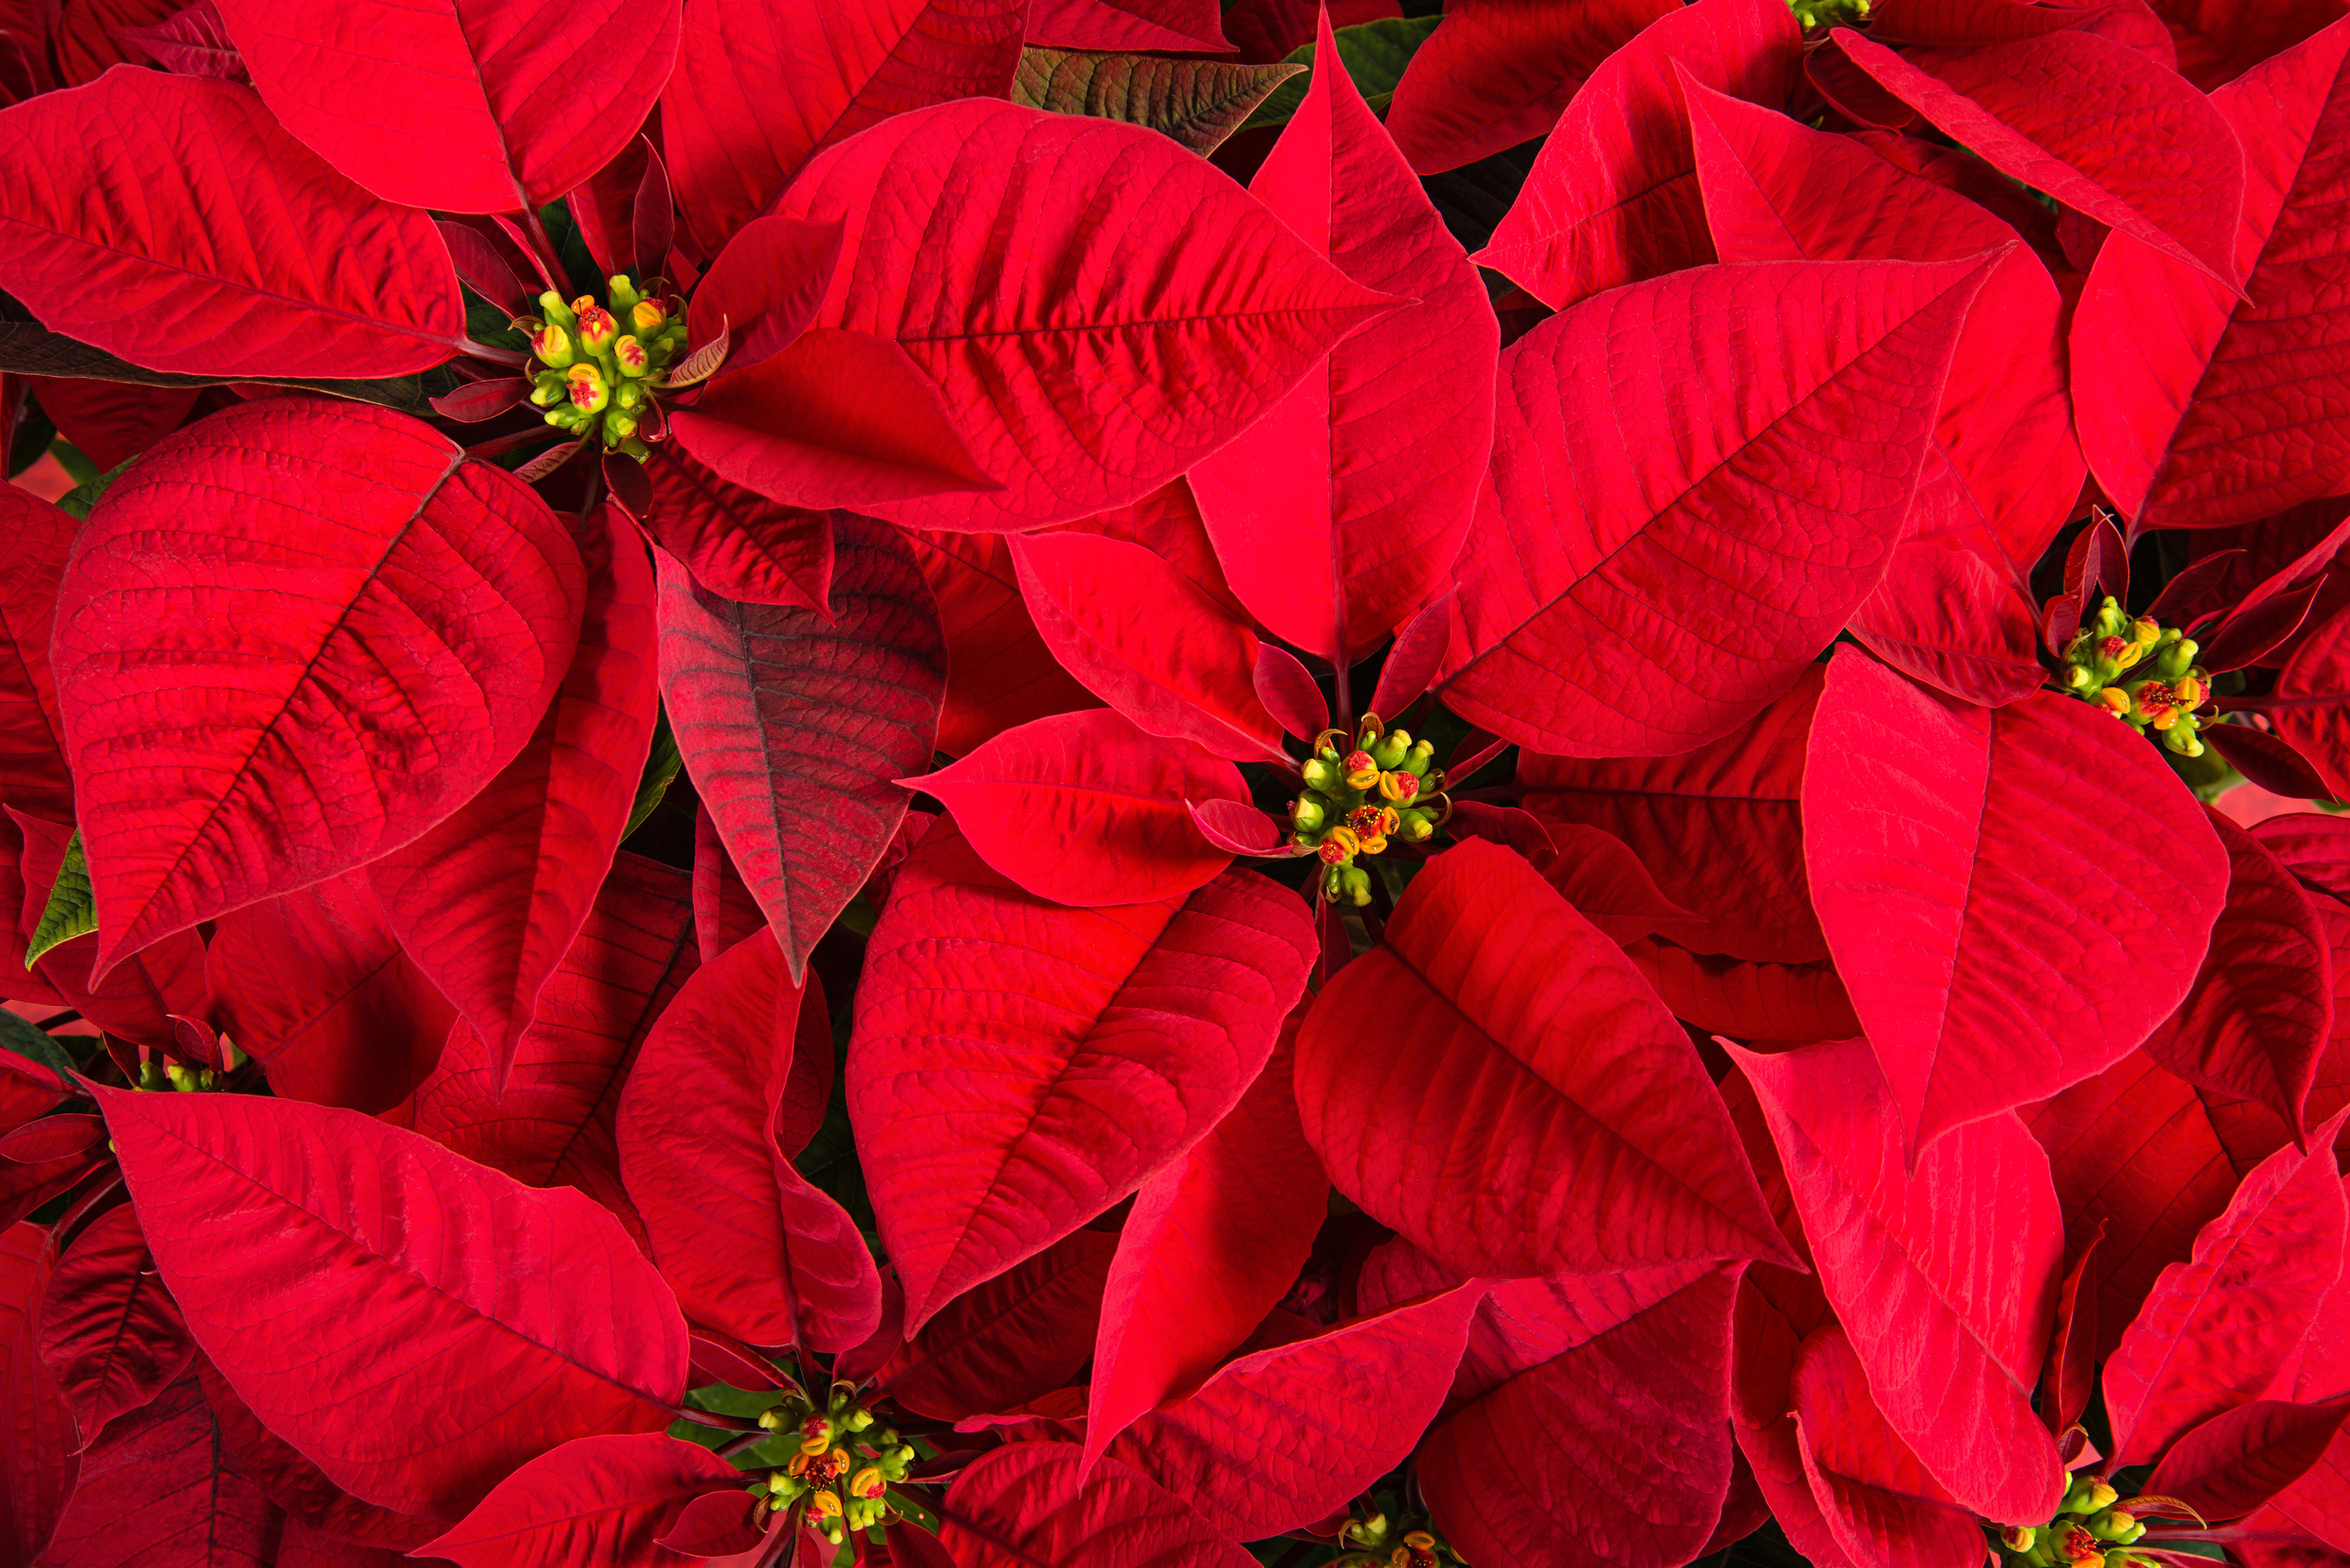 Poinsettia flowers can be harmful to small children if swallowed.